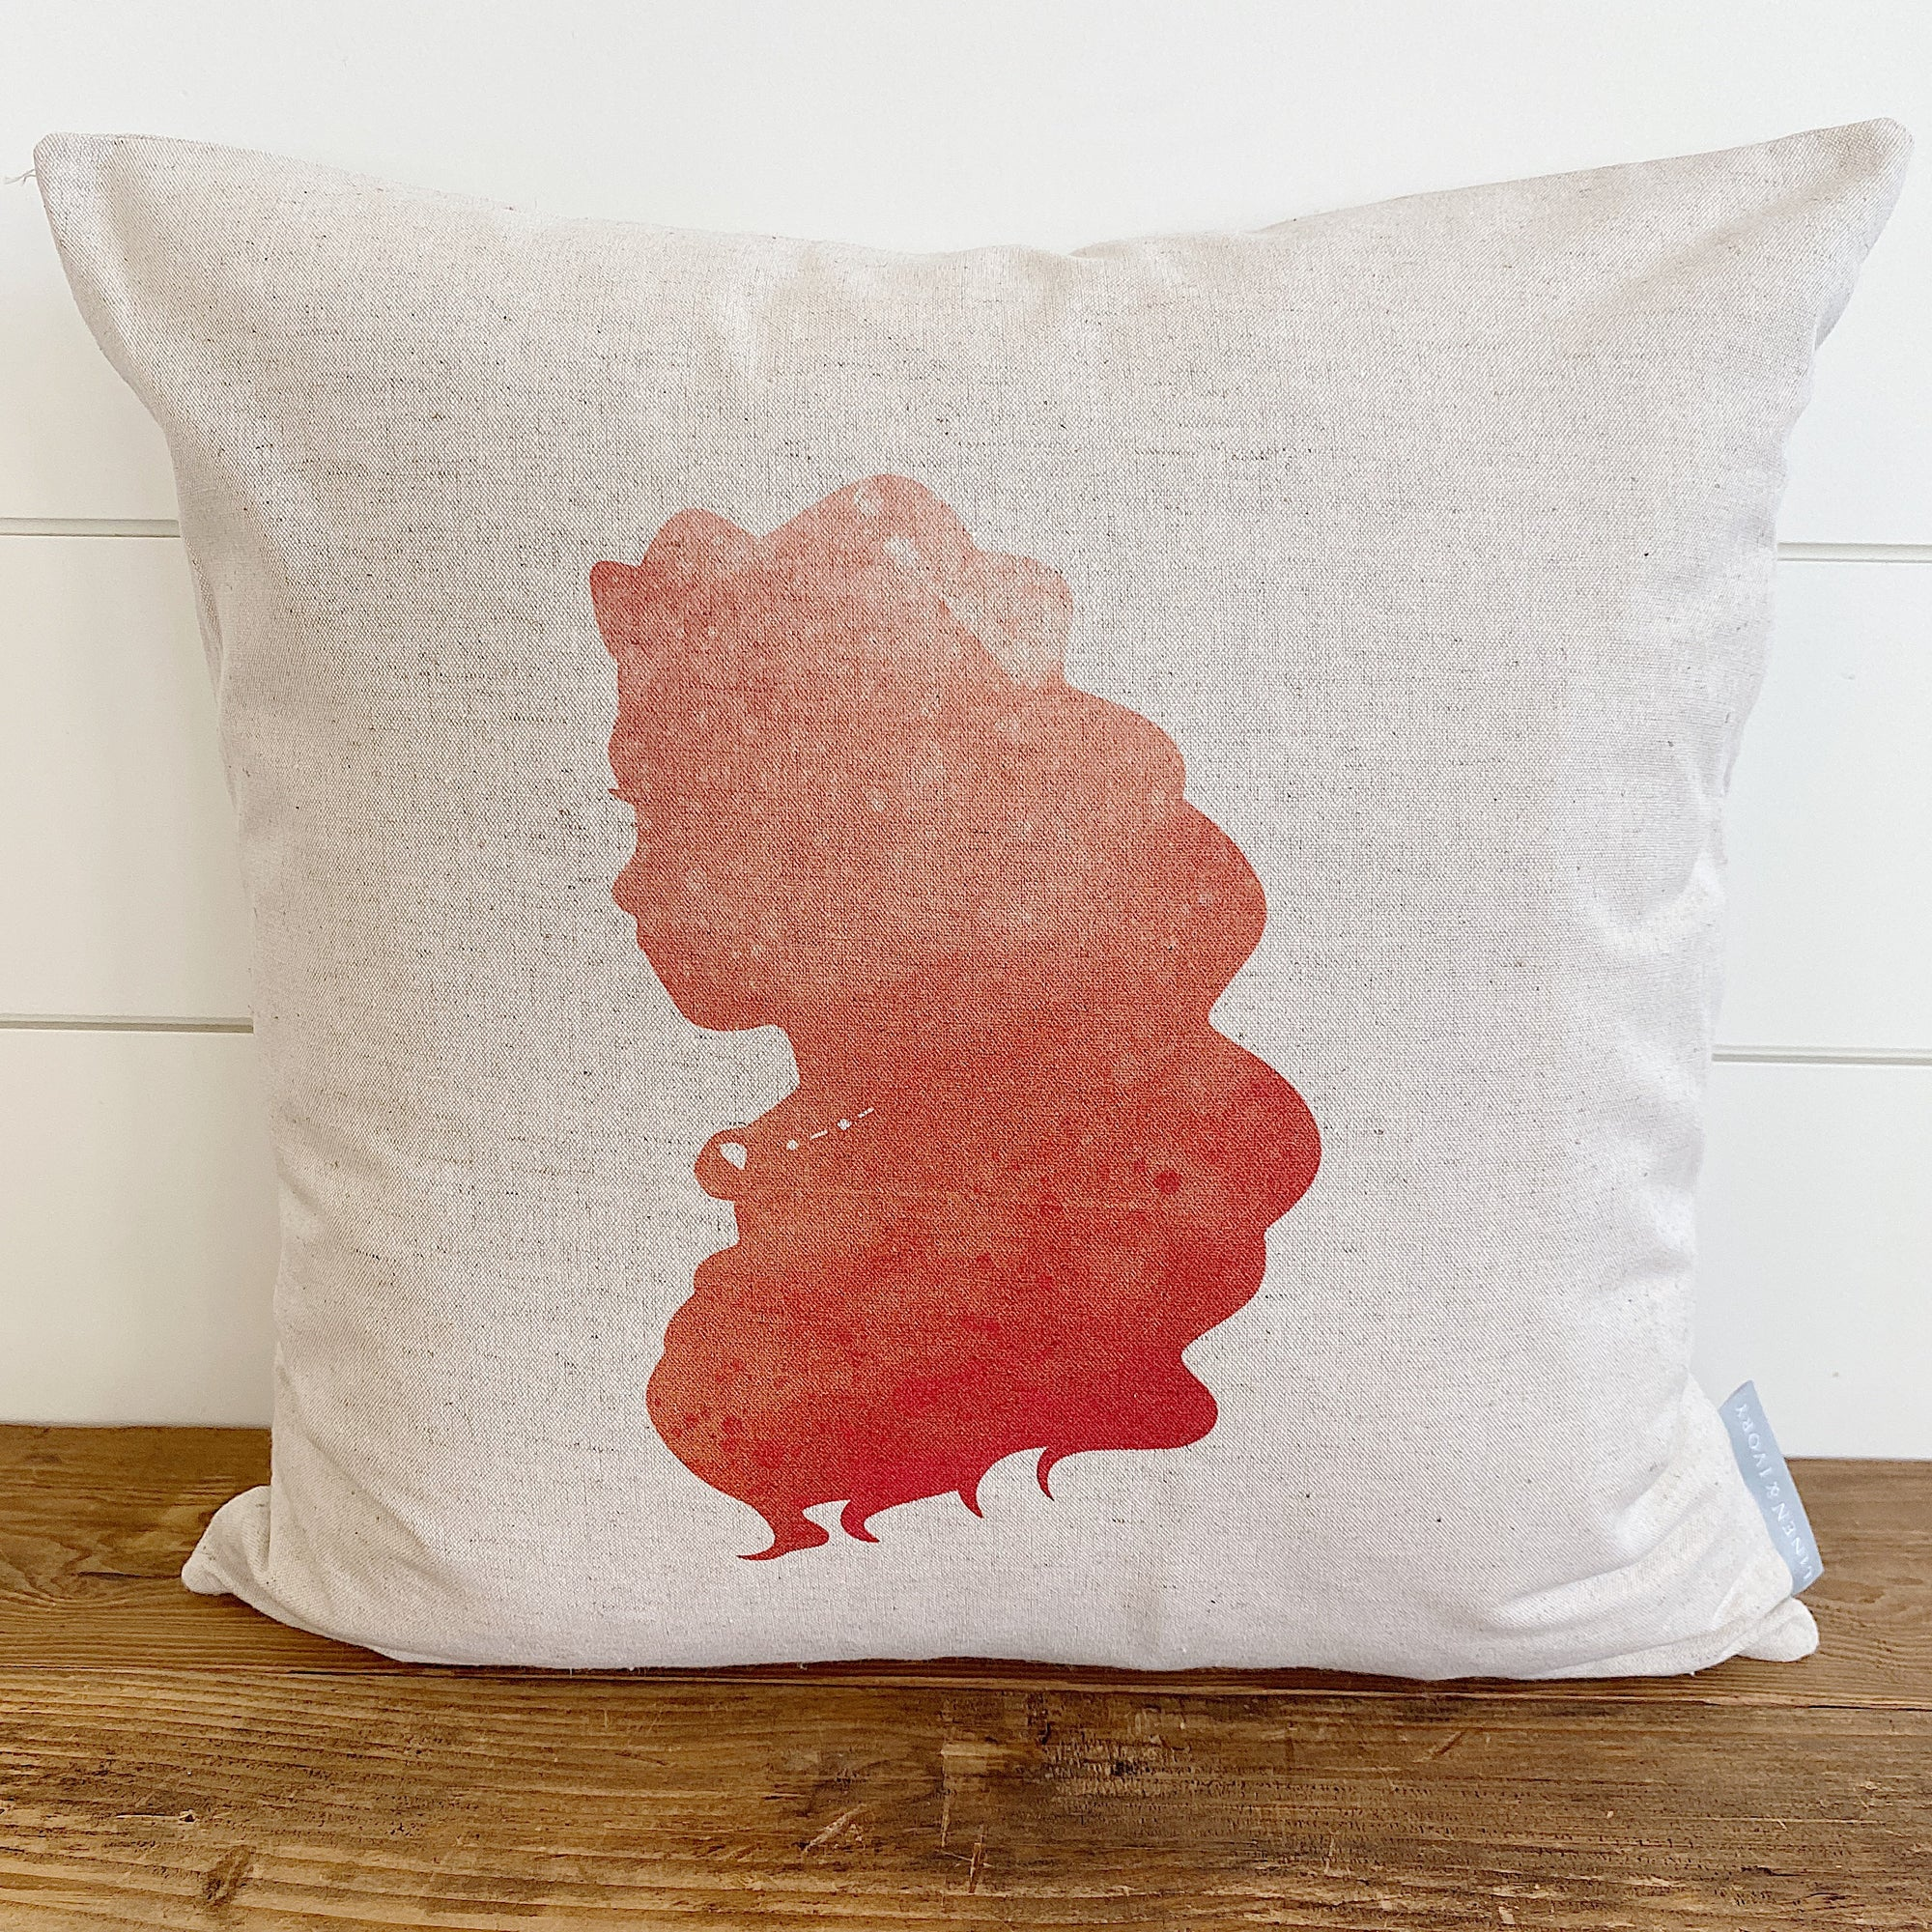 Princess Silhouette Moana Inspired Pillow Cover